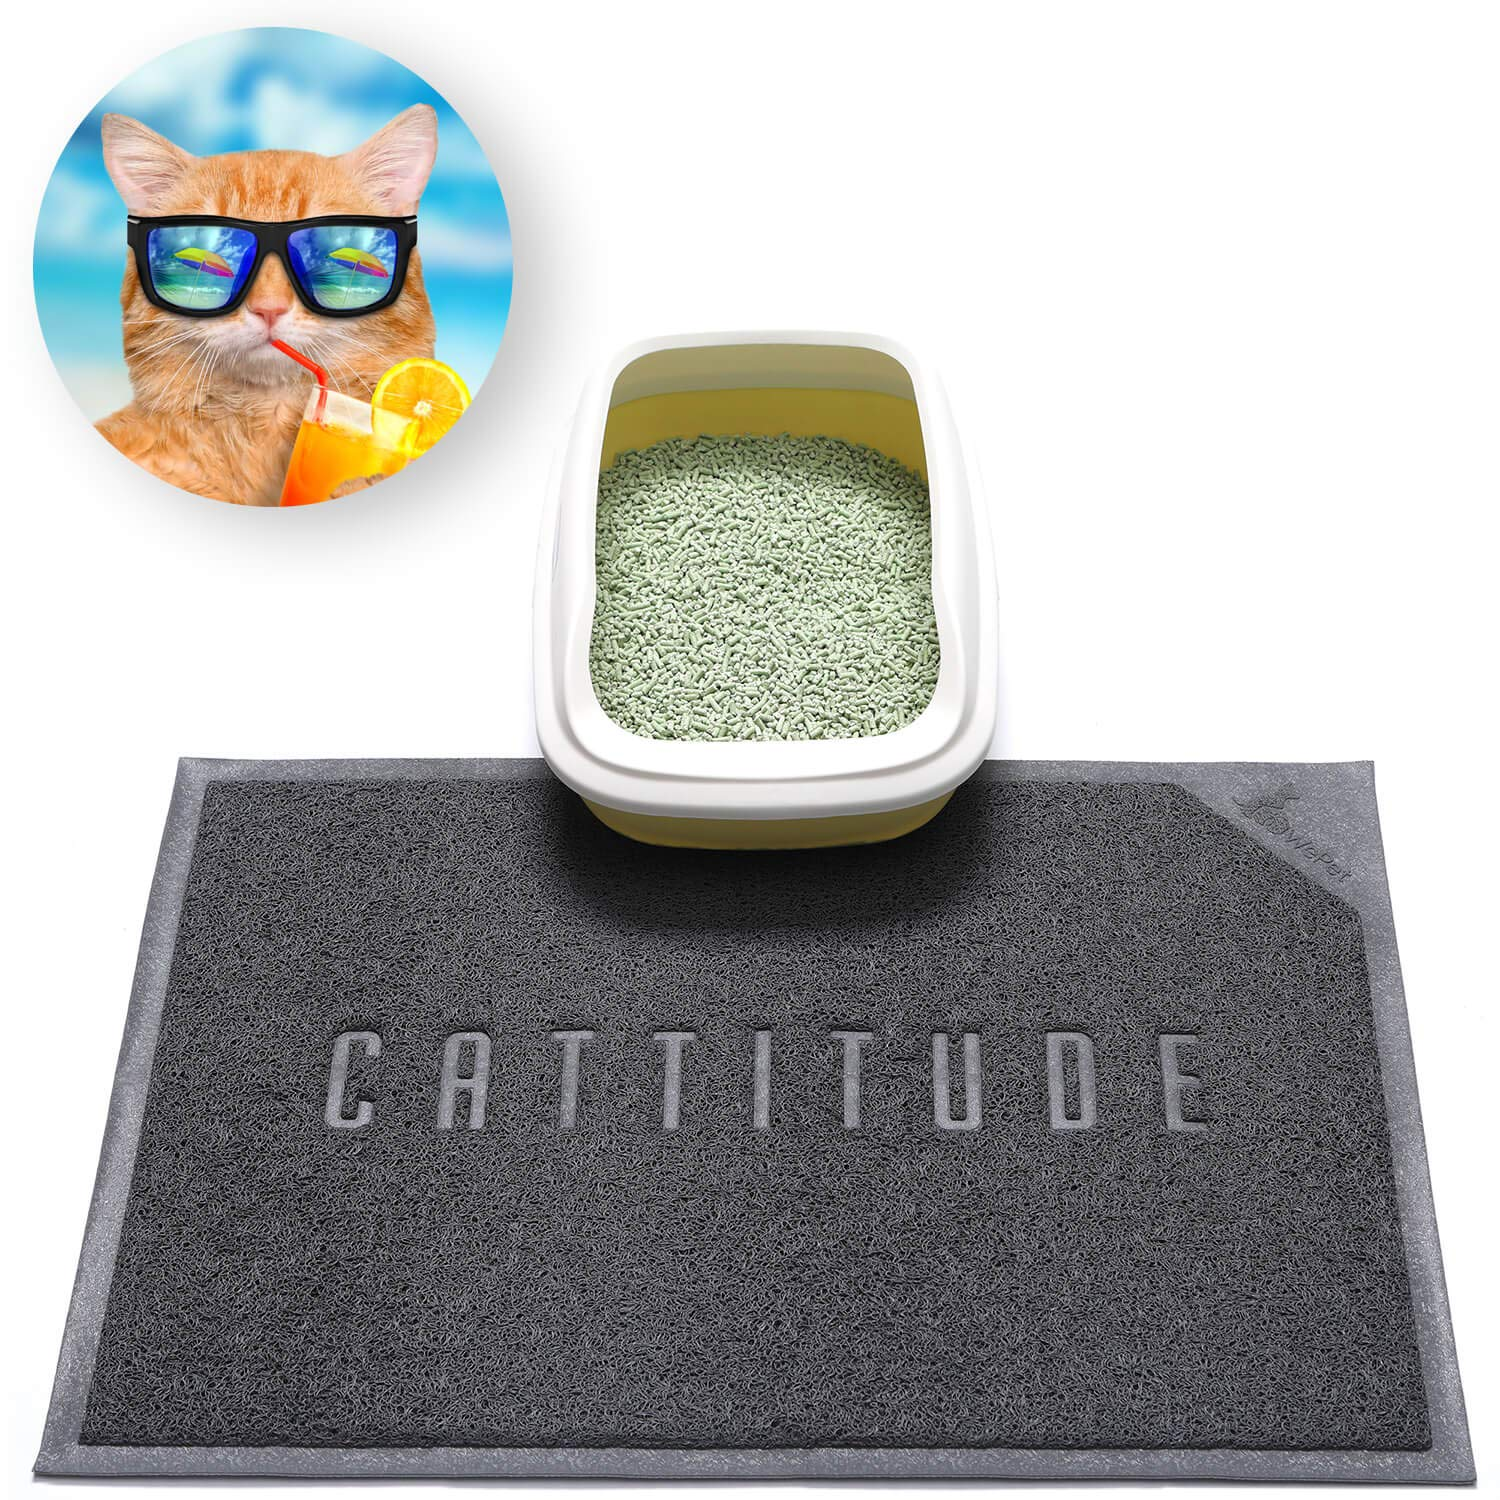 WePet Cat Litter Mat, Kitty Litter Trapping Mat, Premium Durable Soft PVC Rug, Urine Waterproof, Easy Clean, Washable, Scatter Control, Litter Box Tray Carpet